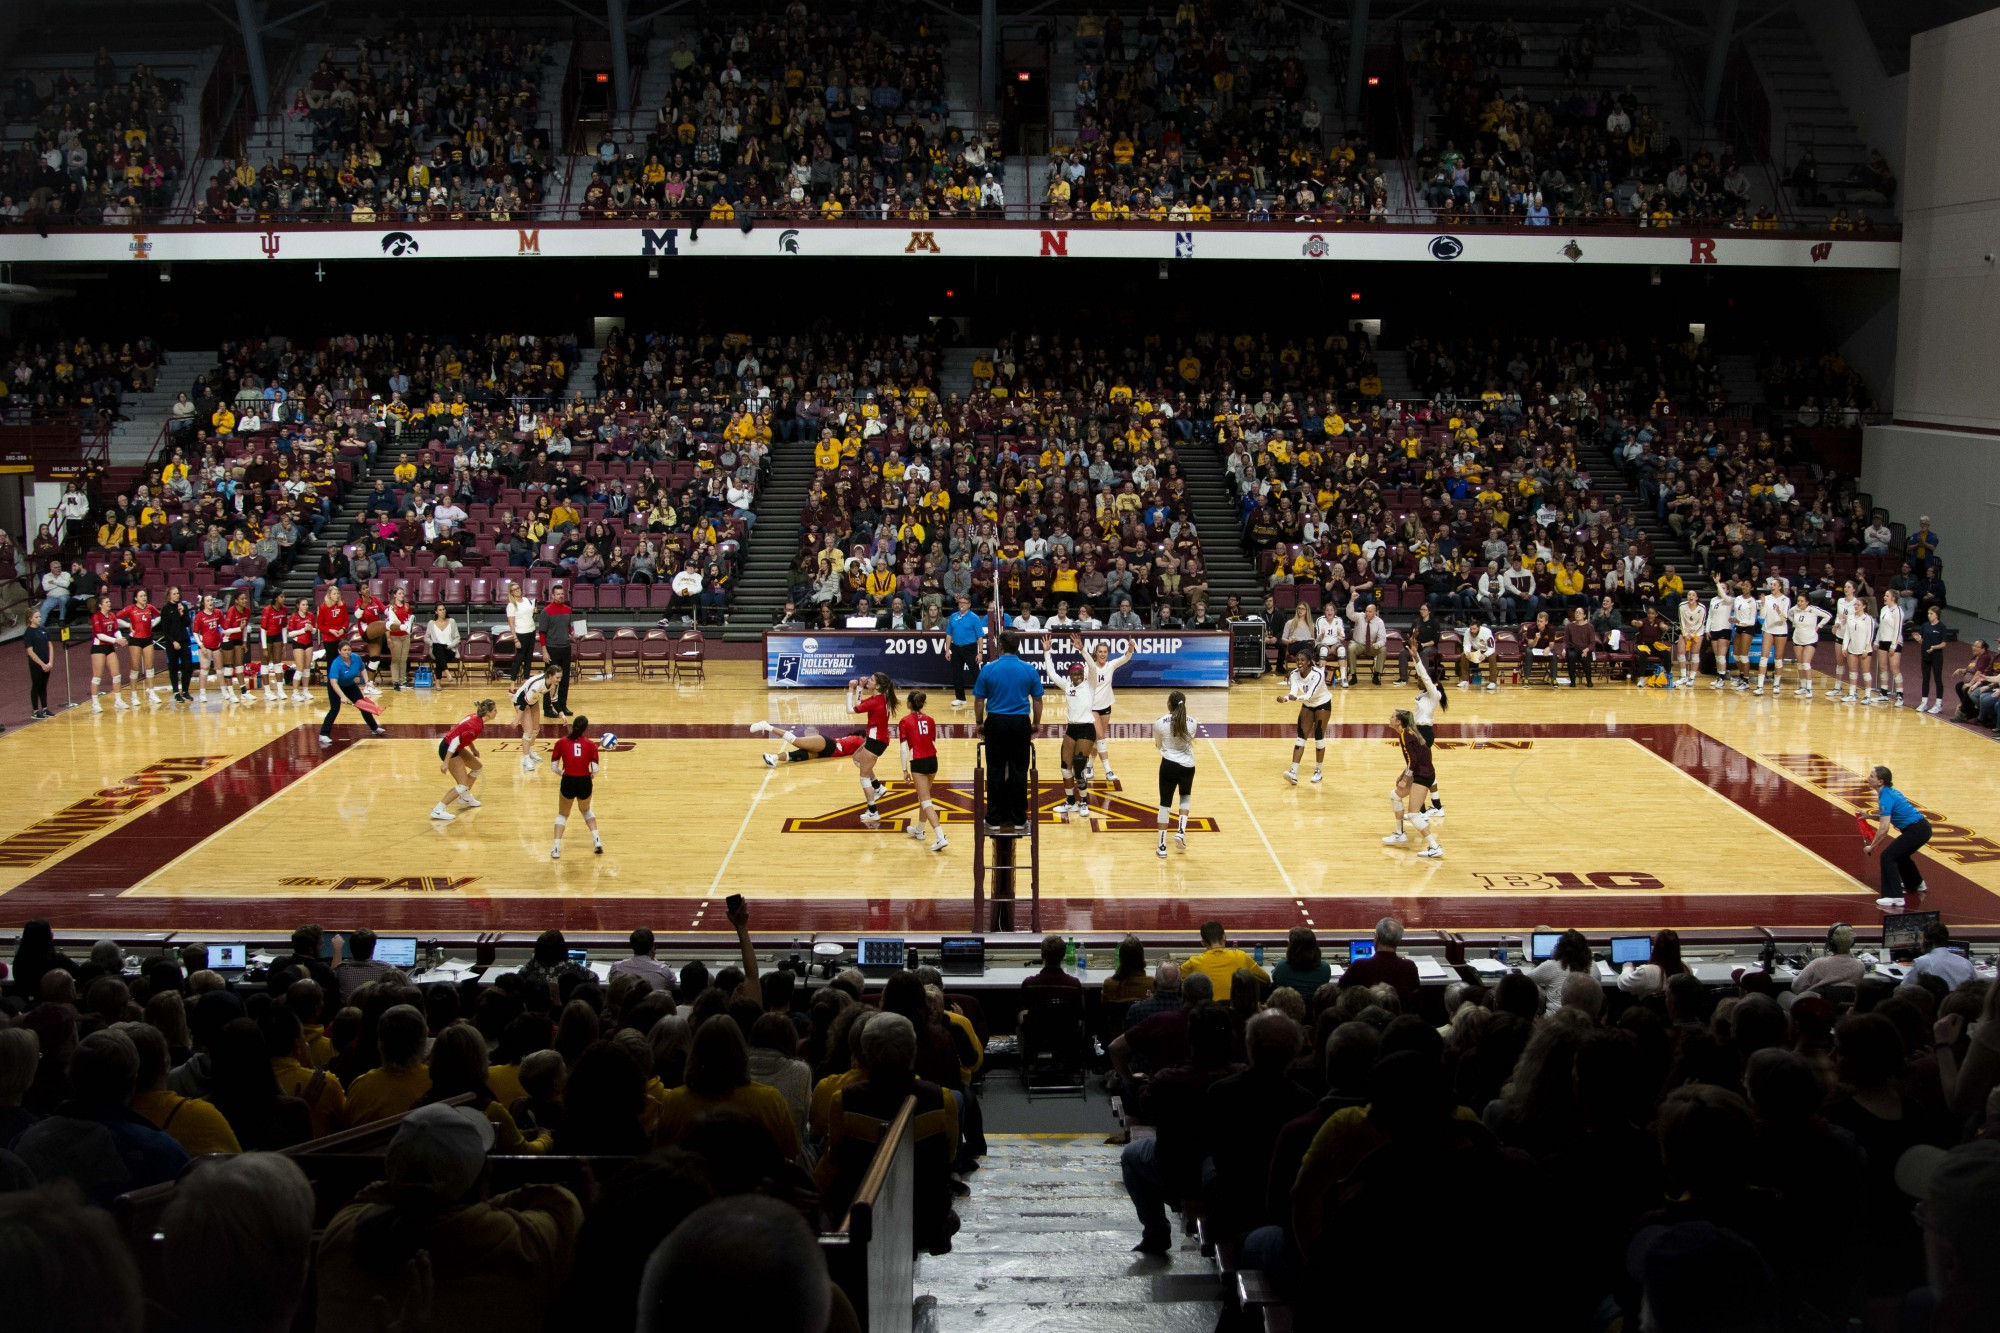 The Gophers celebrate a scored point during the game against the Fairfield Stags in the first round of the NCAA tournament at the Maturi Pavilion on Friday, Dec. 6.